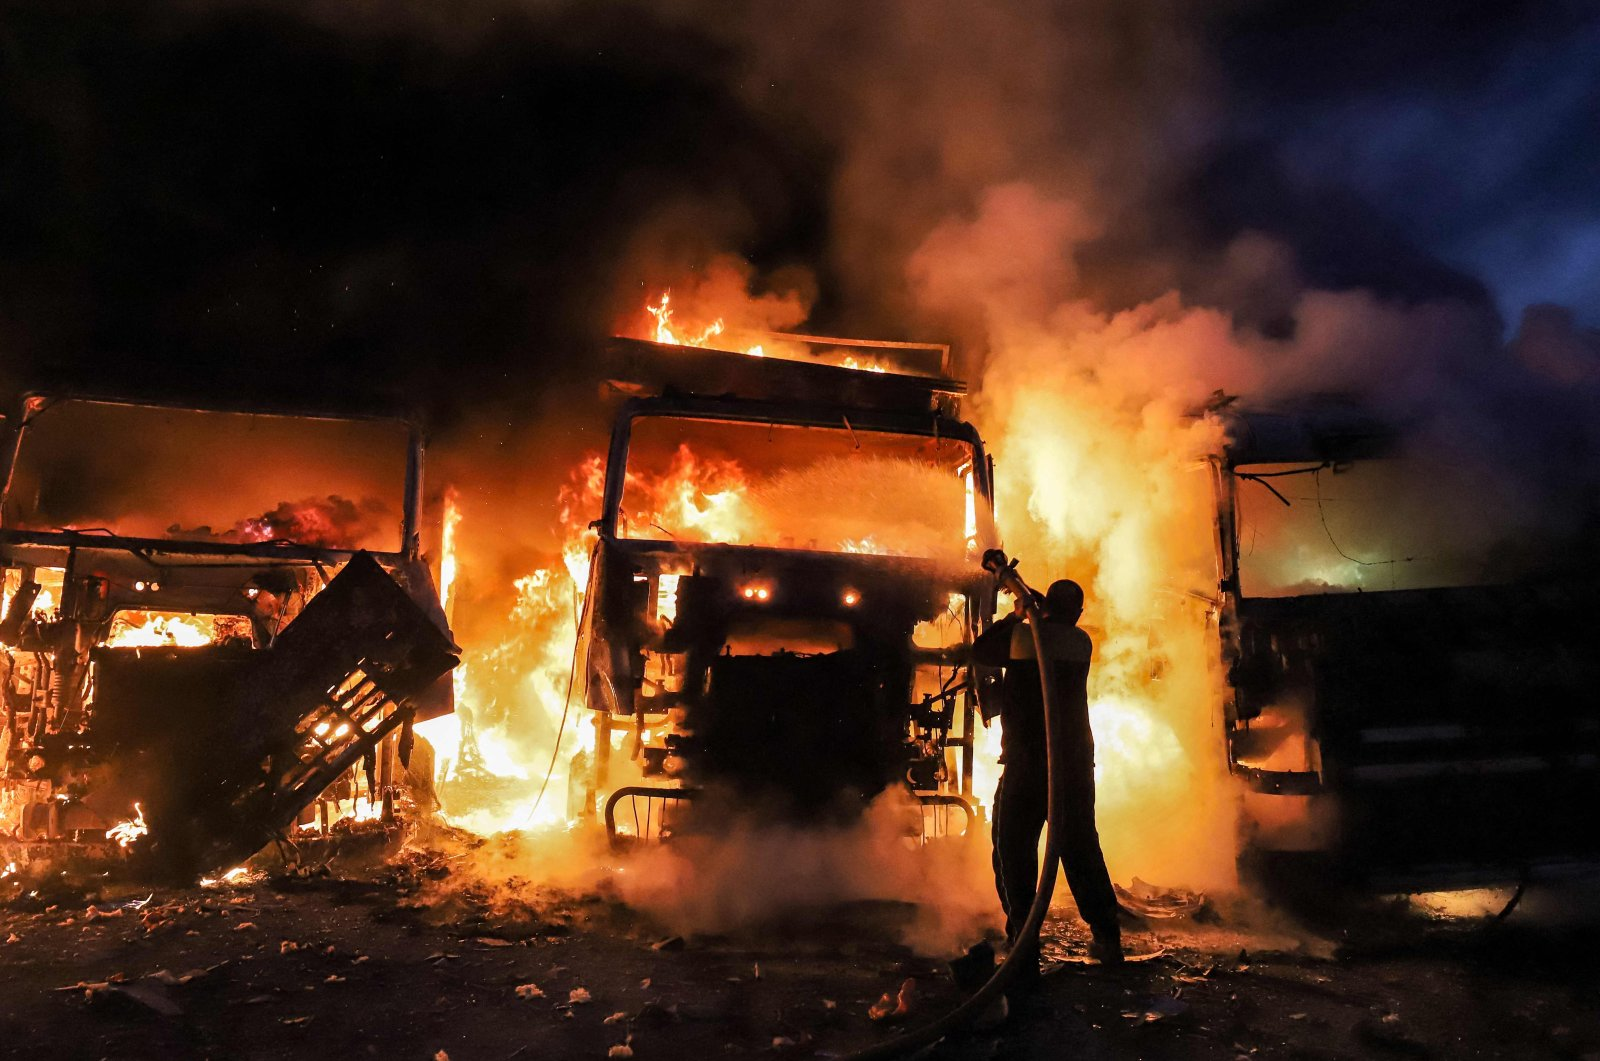 Members of the Syrian civil defense try to put out several trucks and freight vehicles on fire in the aftermath of airstrikes at a depot near the Bab al-Hawa border crossing between Syria and Turkey in the opposition-held northwestern Idlib province, Syria, March 21, 2021. (AFP)